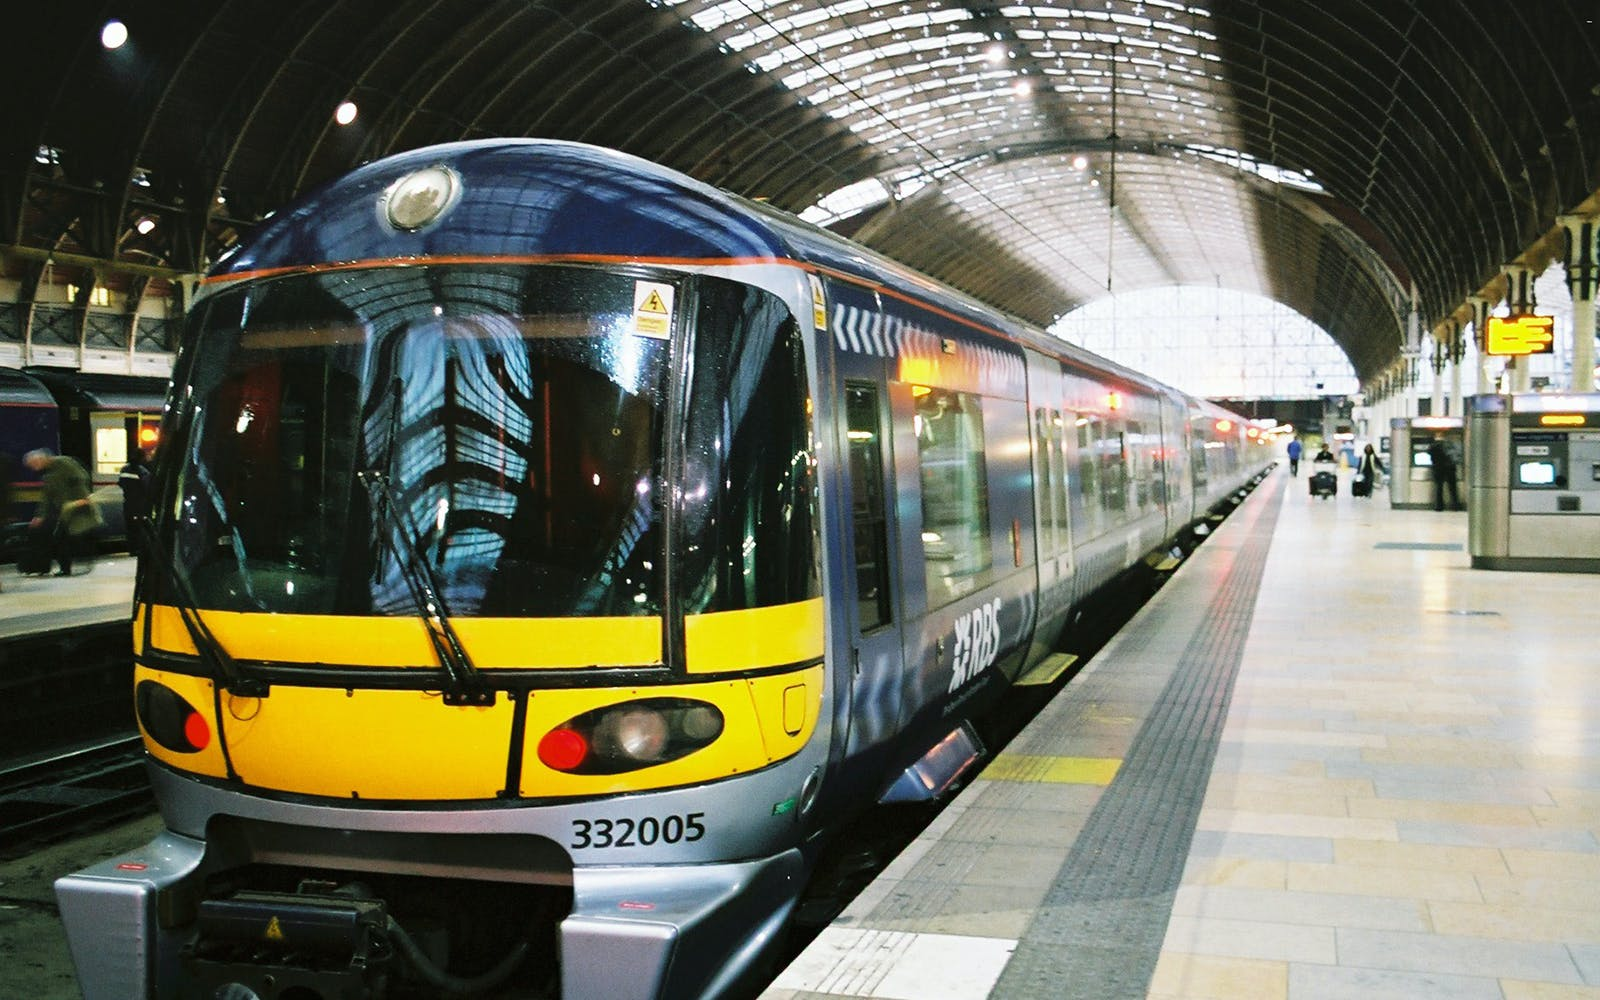 London Heathrow Express: Superfast Train to/from Central London